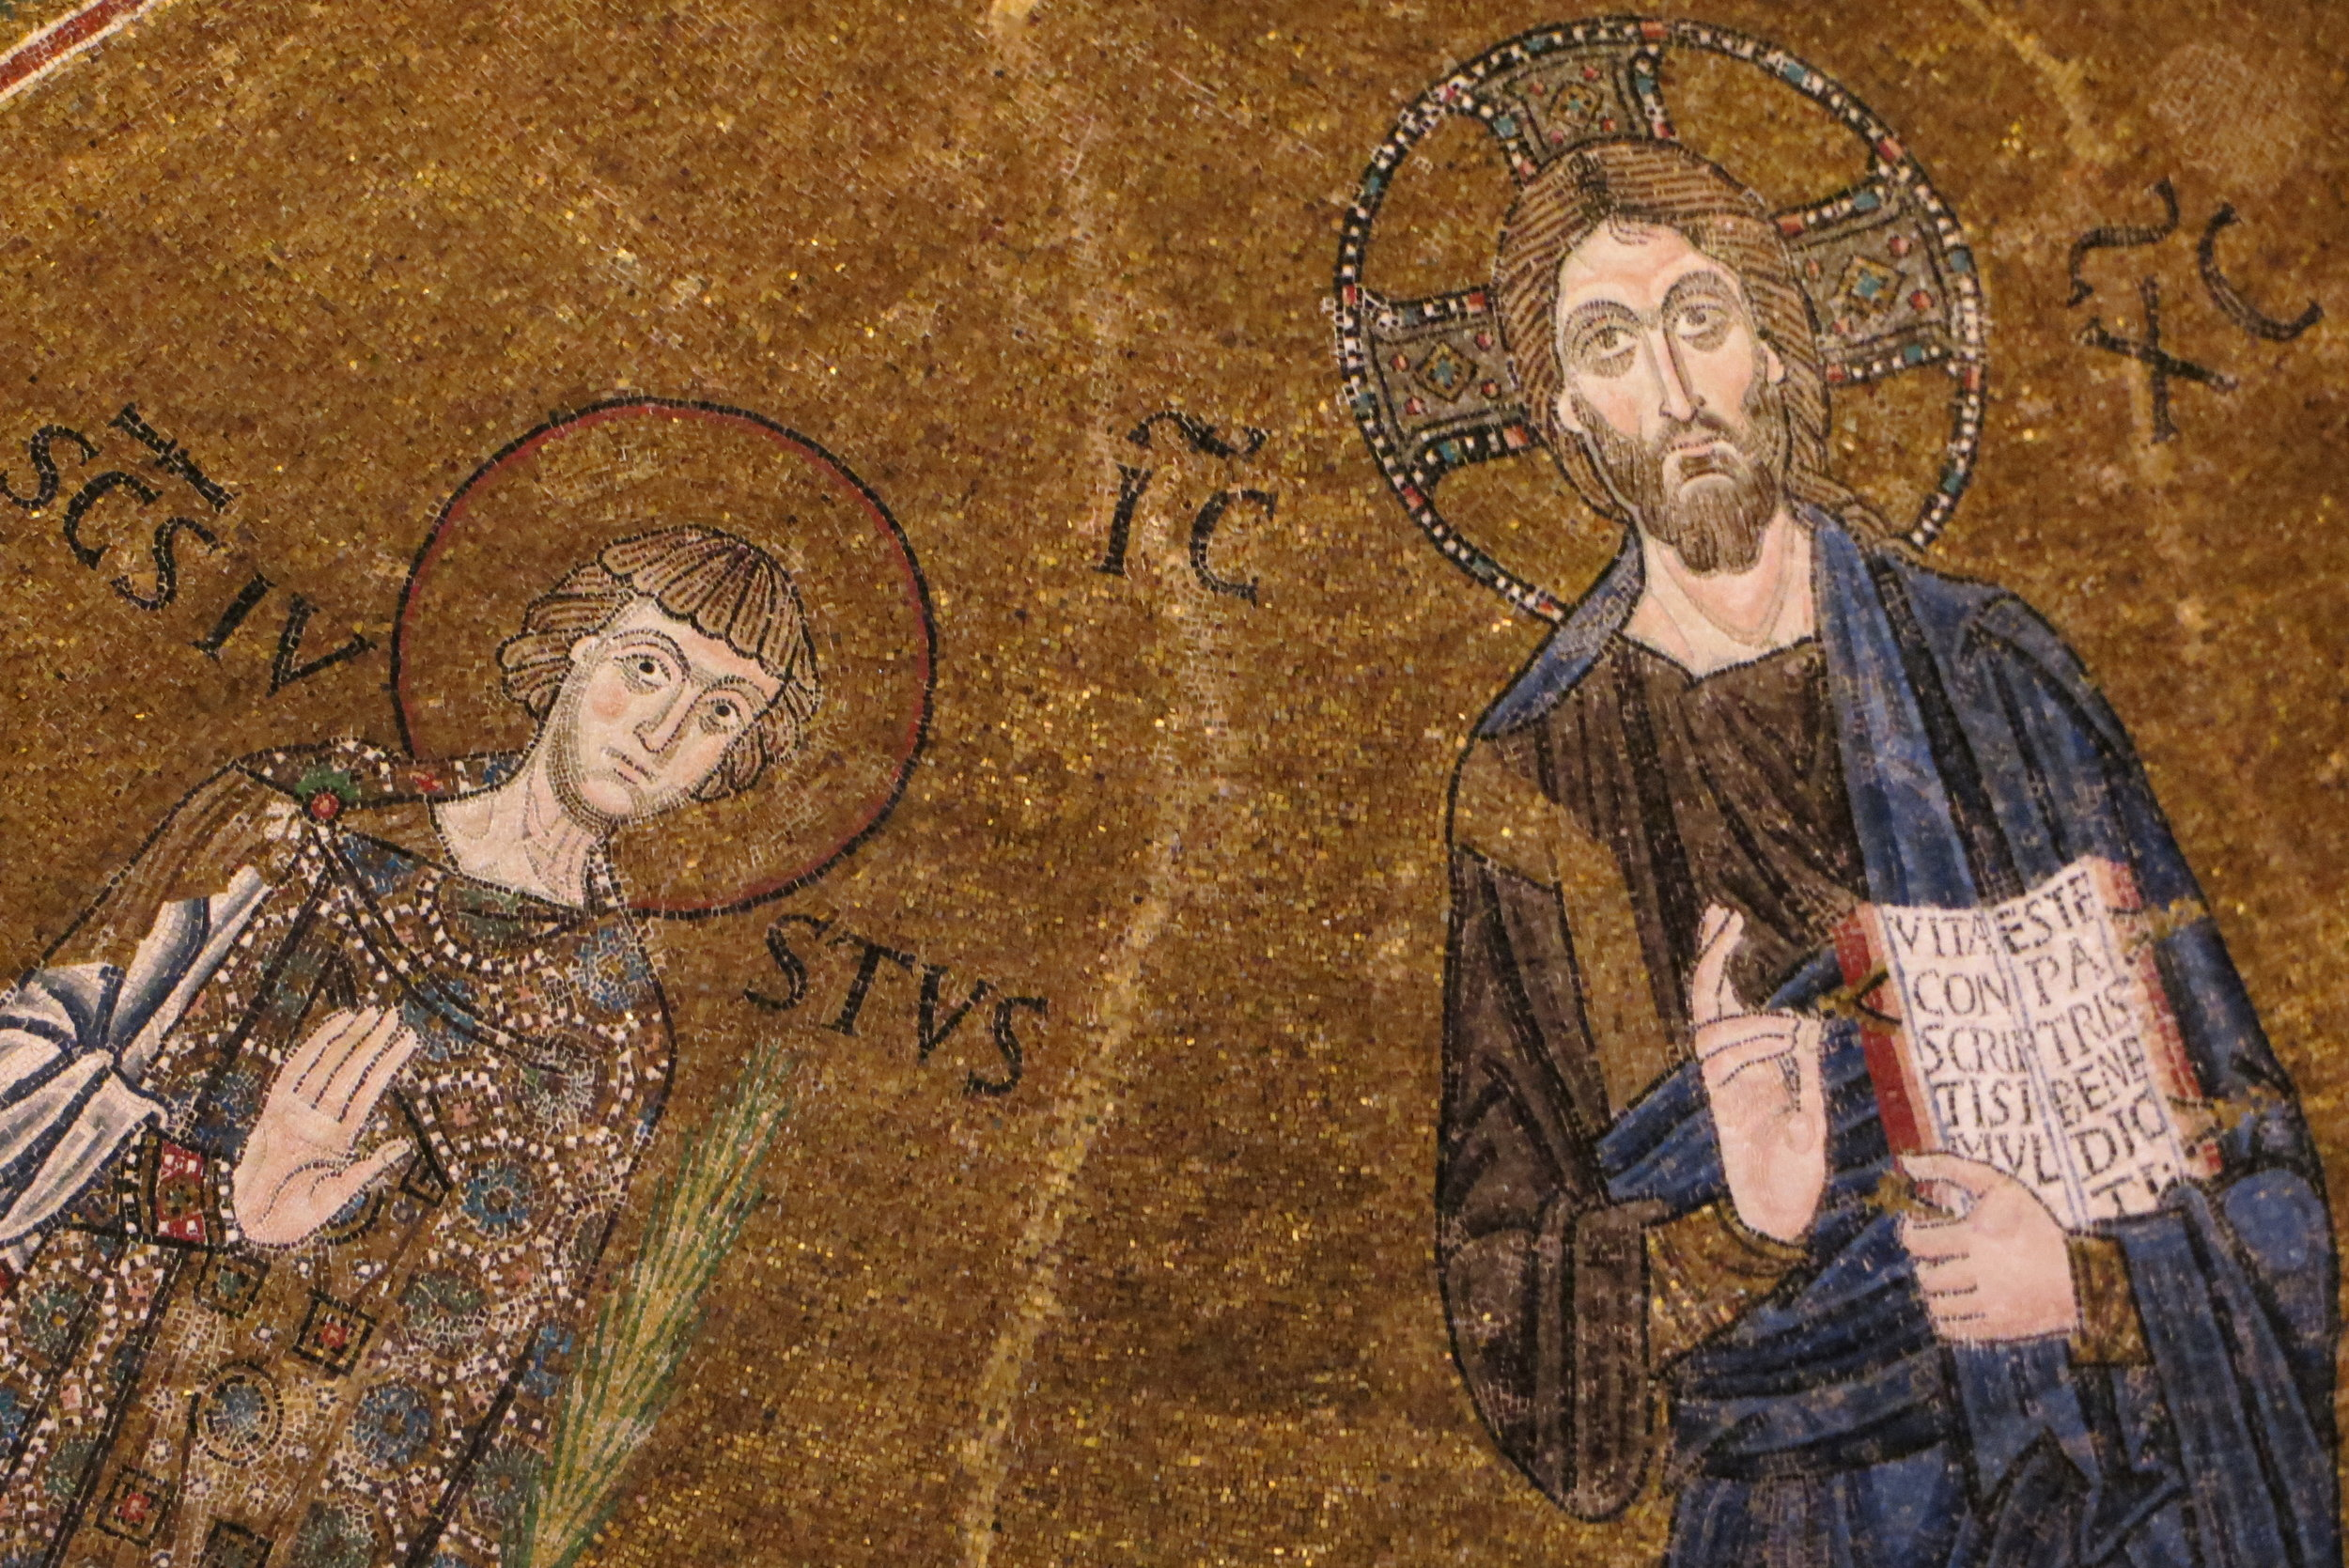 Mosaic of San Guisto and Jesus from the Basilica of San Giusto, Trieste, 12th-13th c)